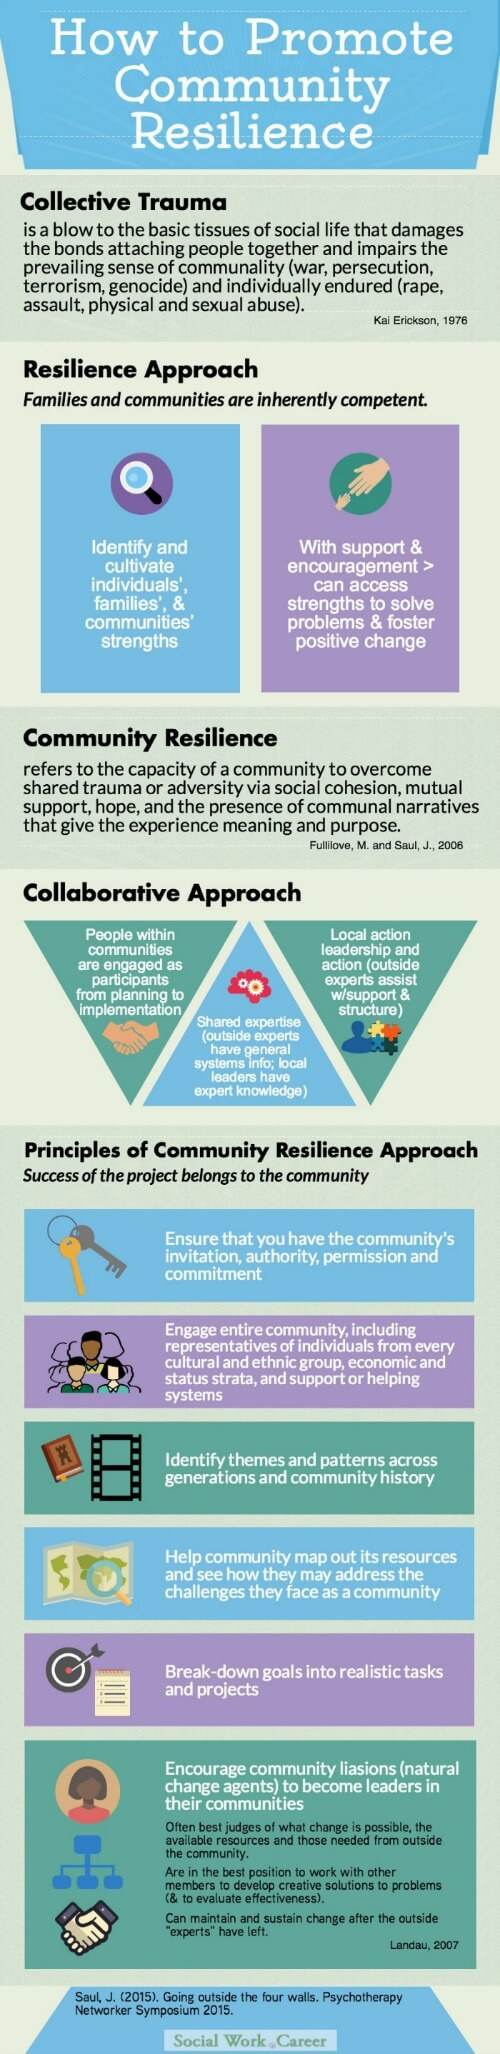 community resilience med